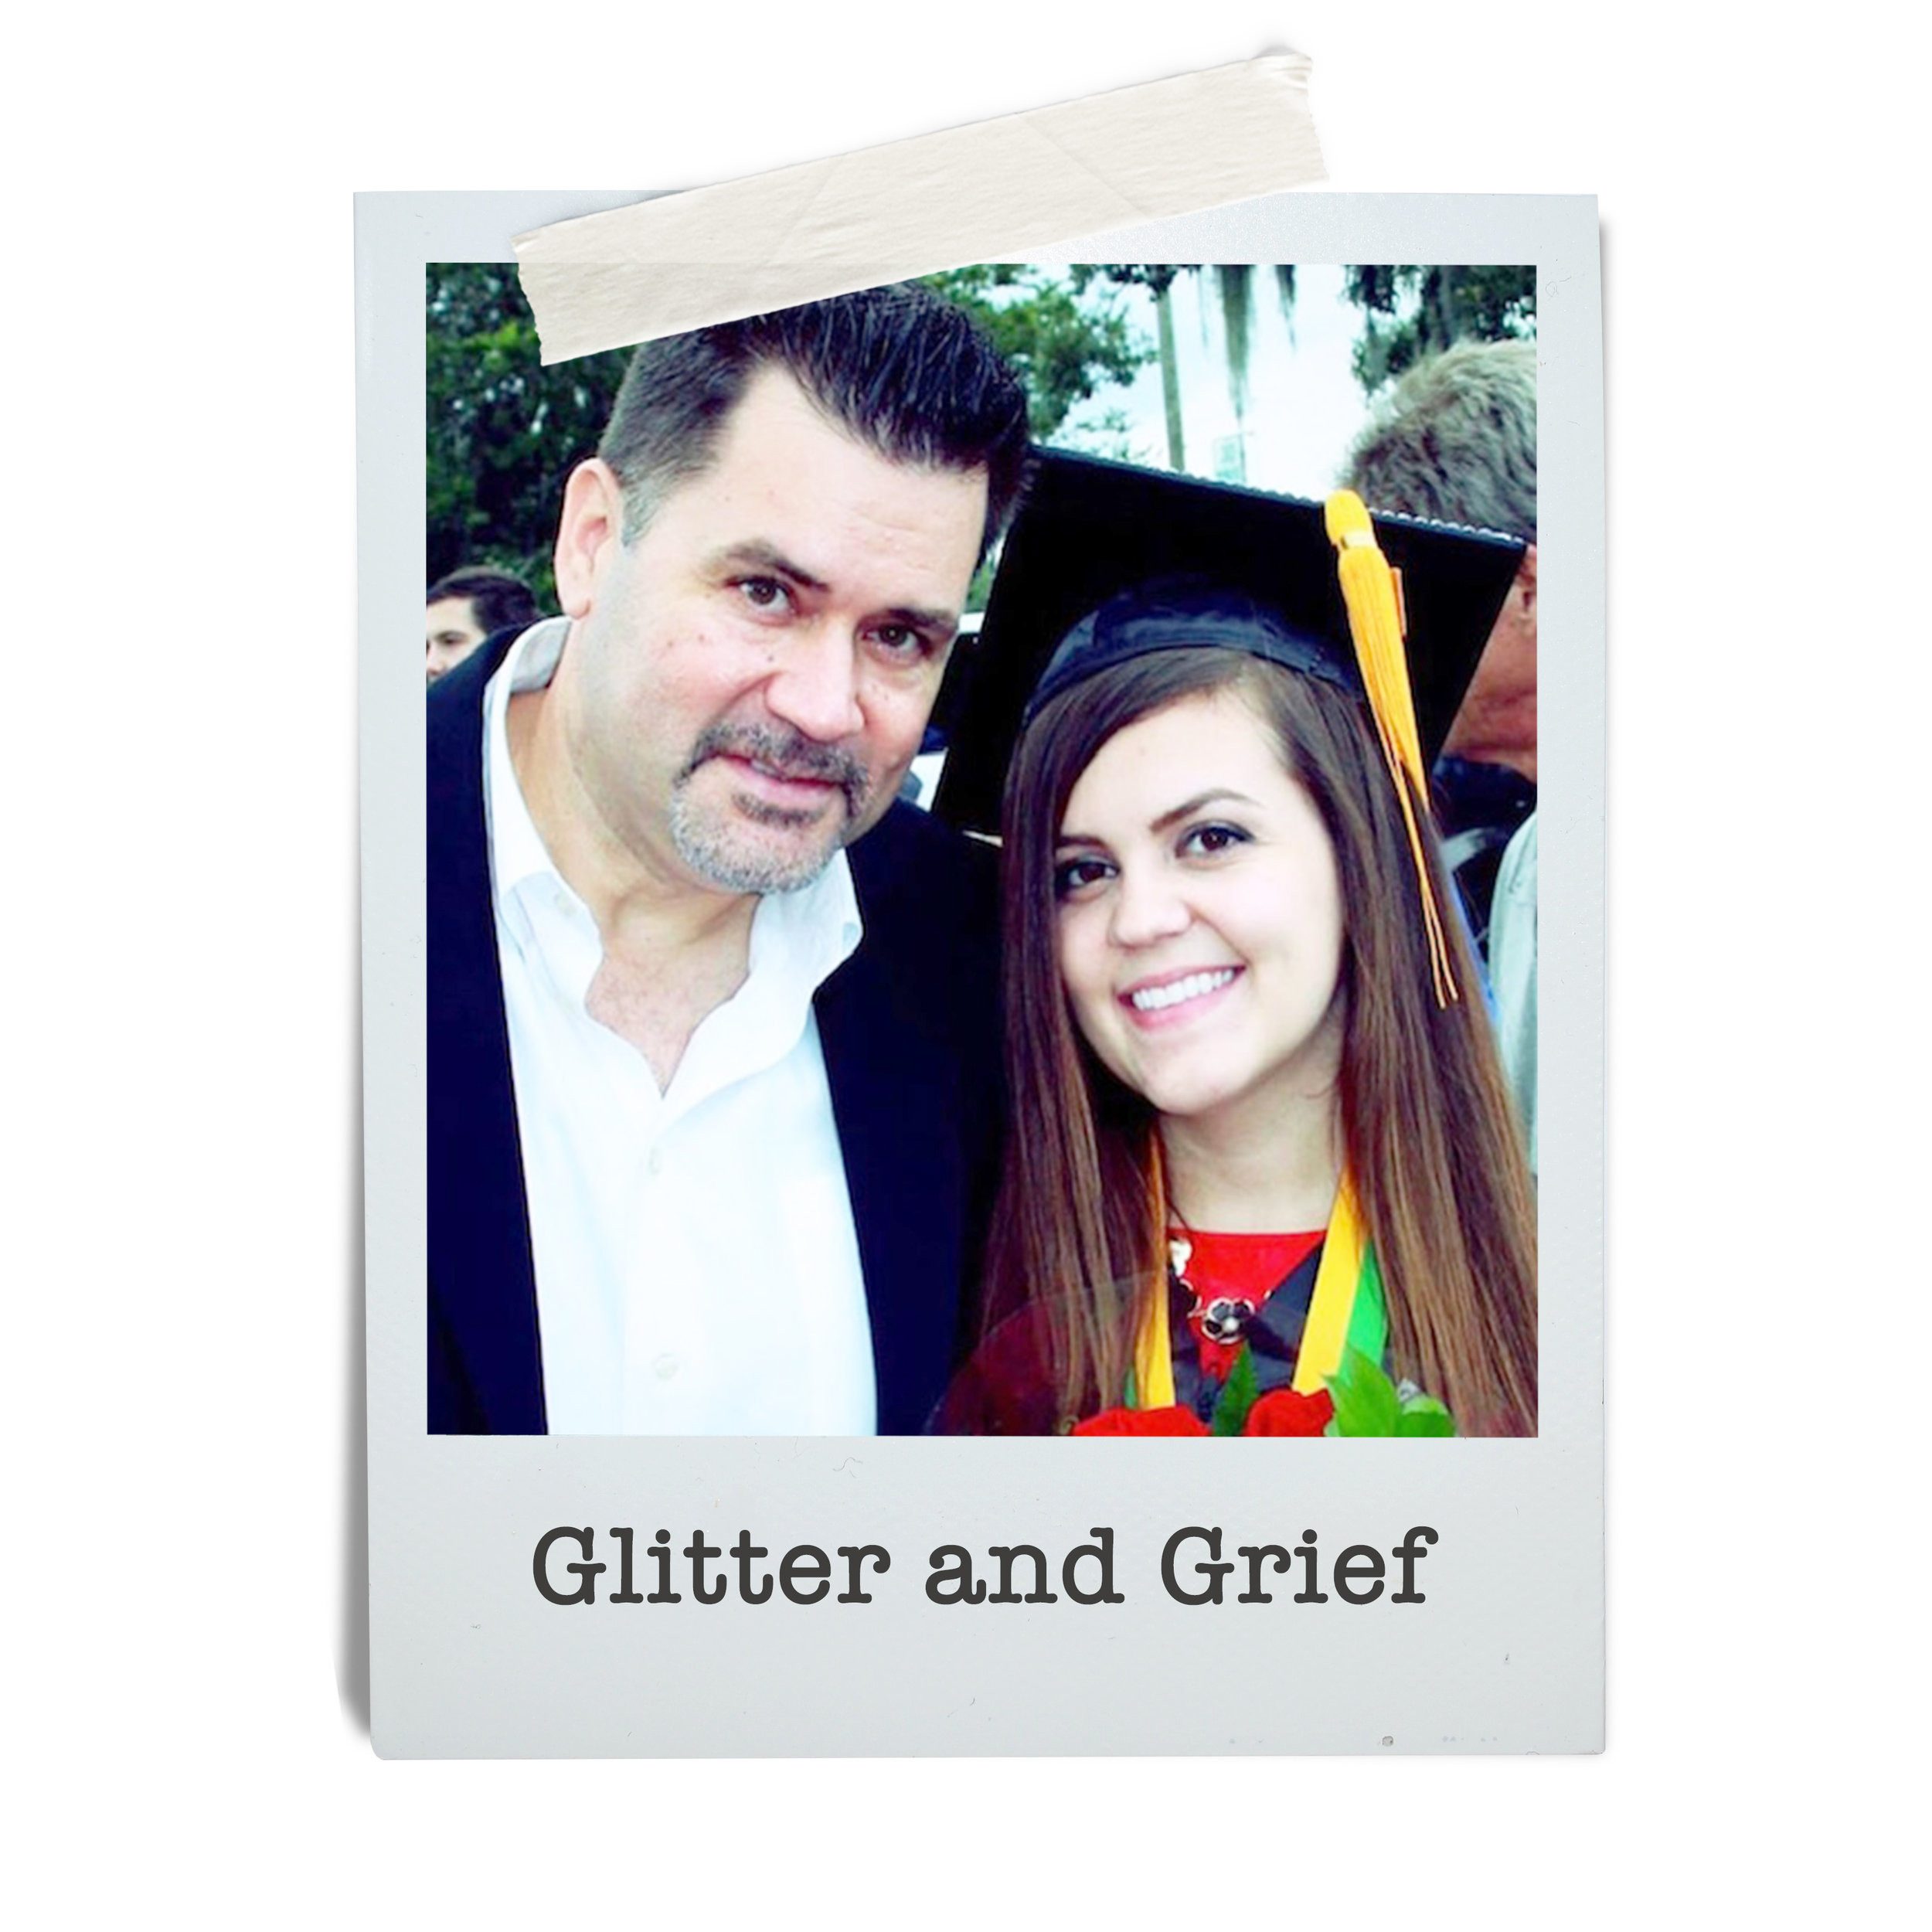 Glitter and Grief